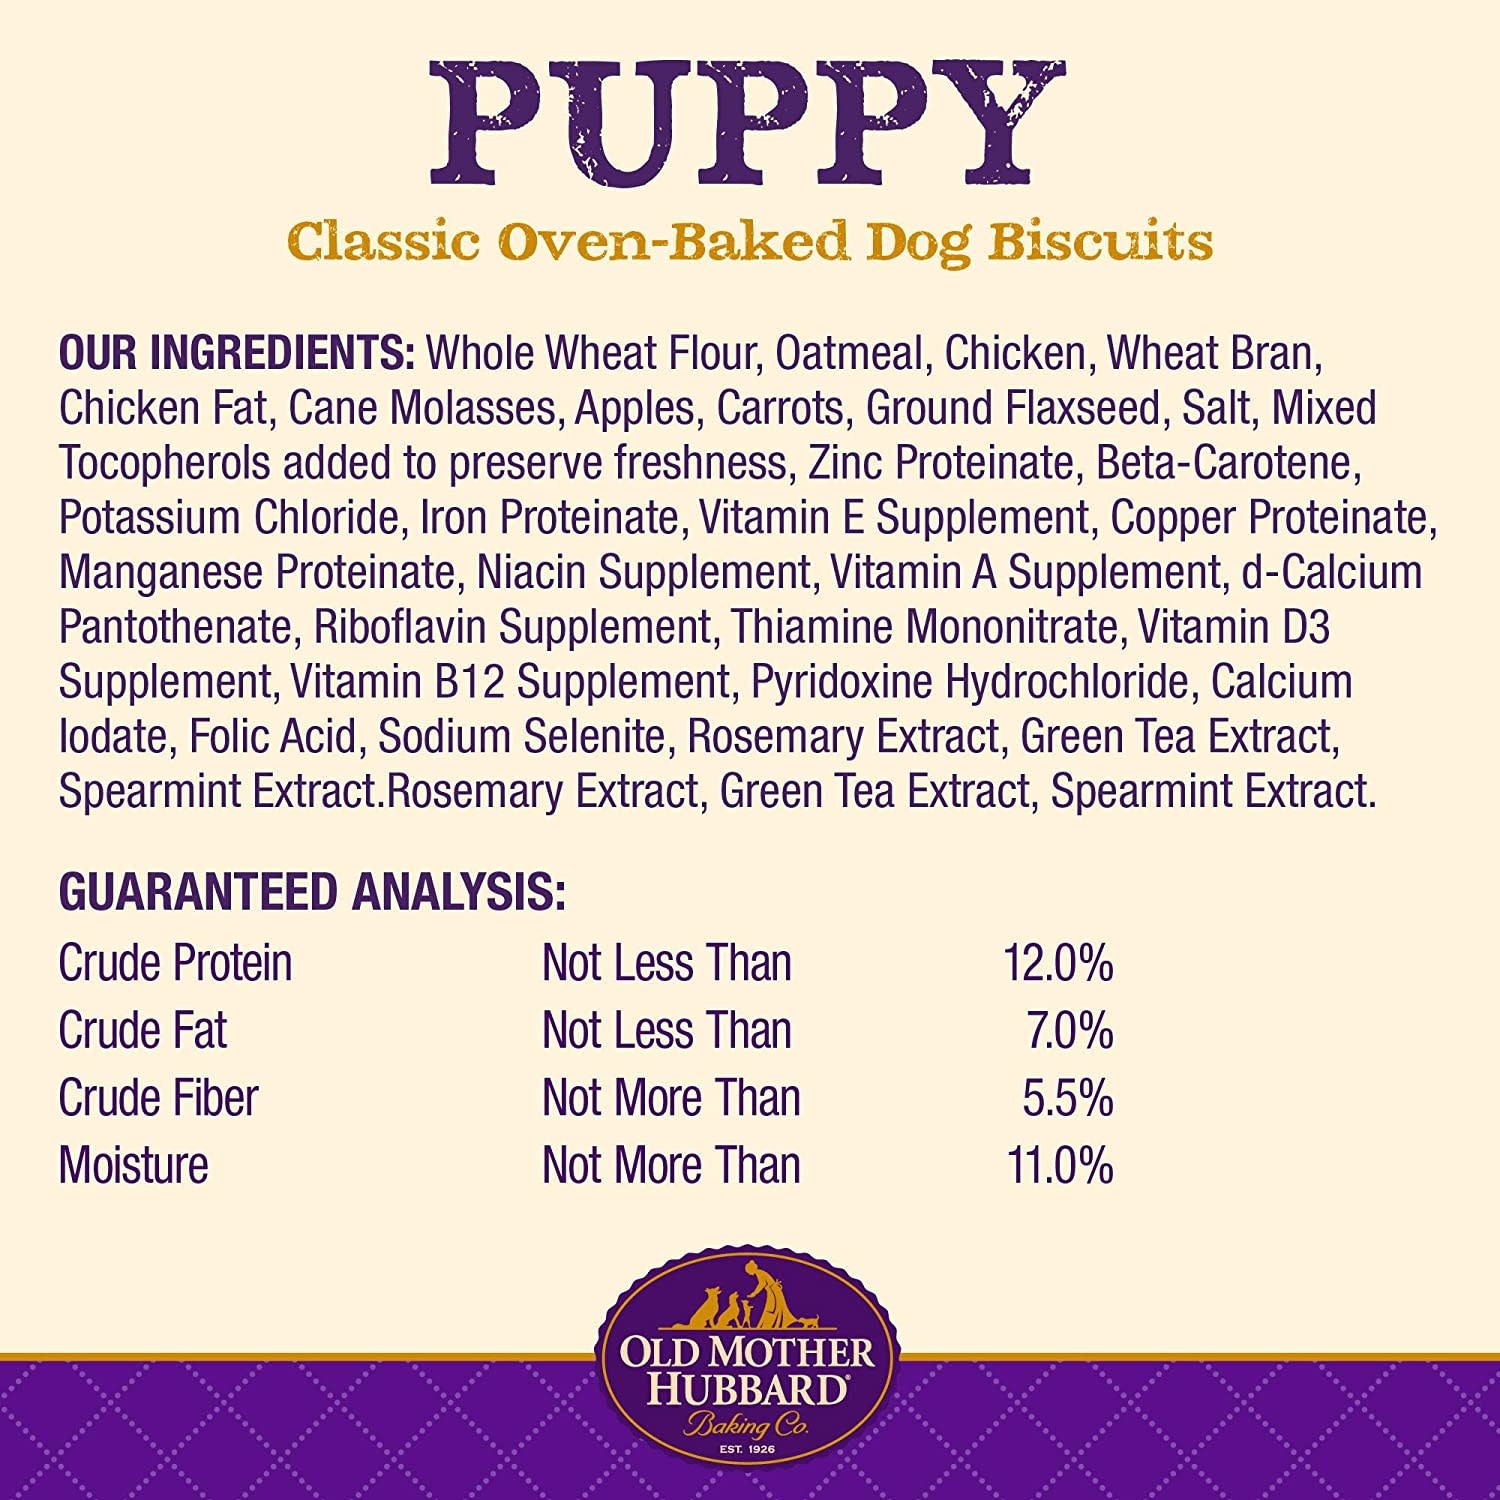 WellPet Old Mother Hubbard Puppy Mini Biscuits 20oz